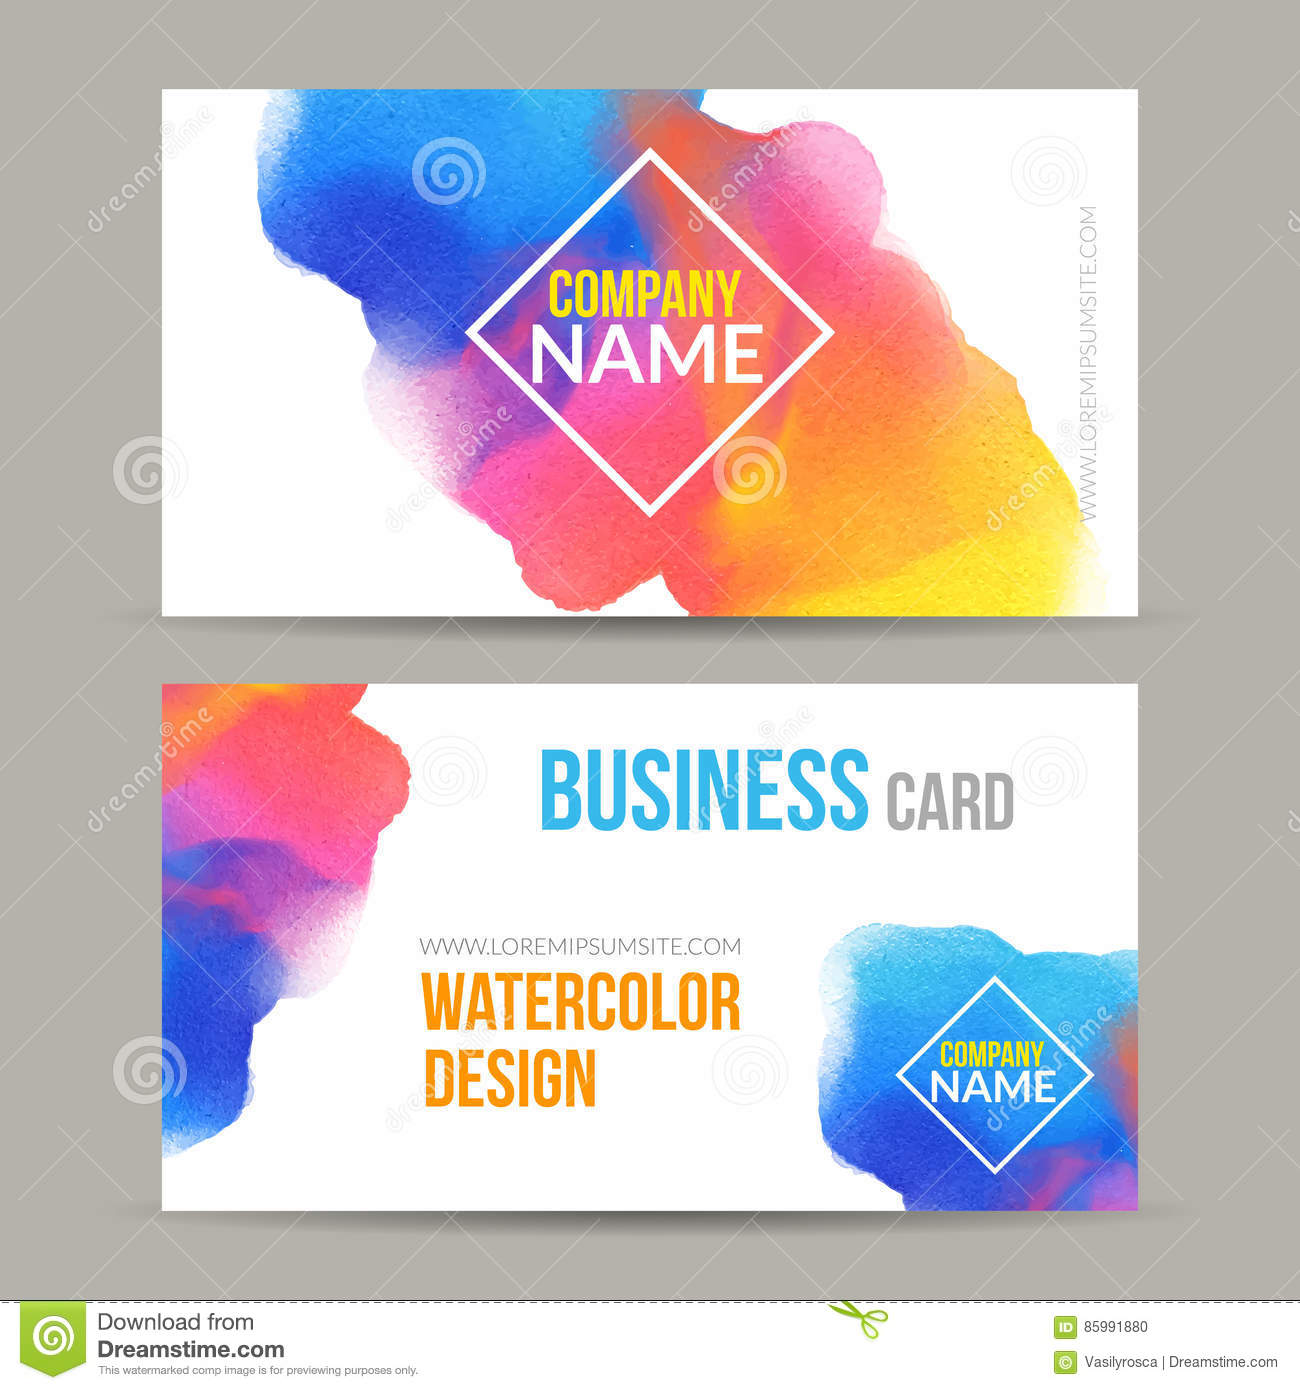 Vector business cards template with watercolor paint abstract vector business cards template with watercolor paint abstract background business card mockup flashek Image collections